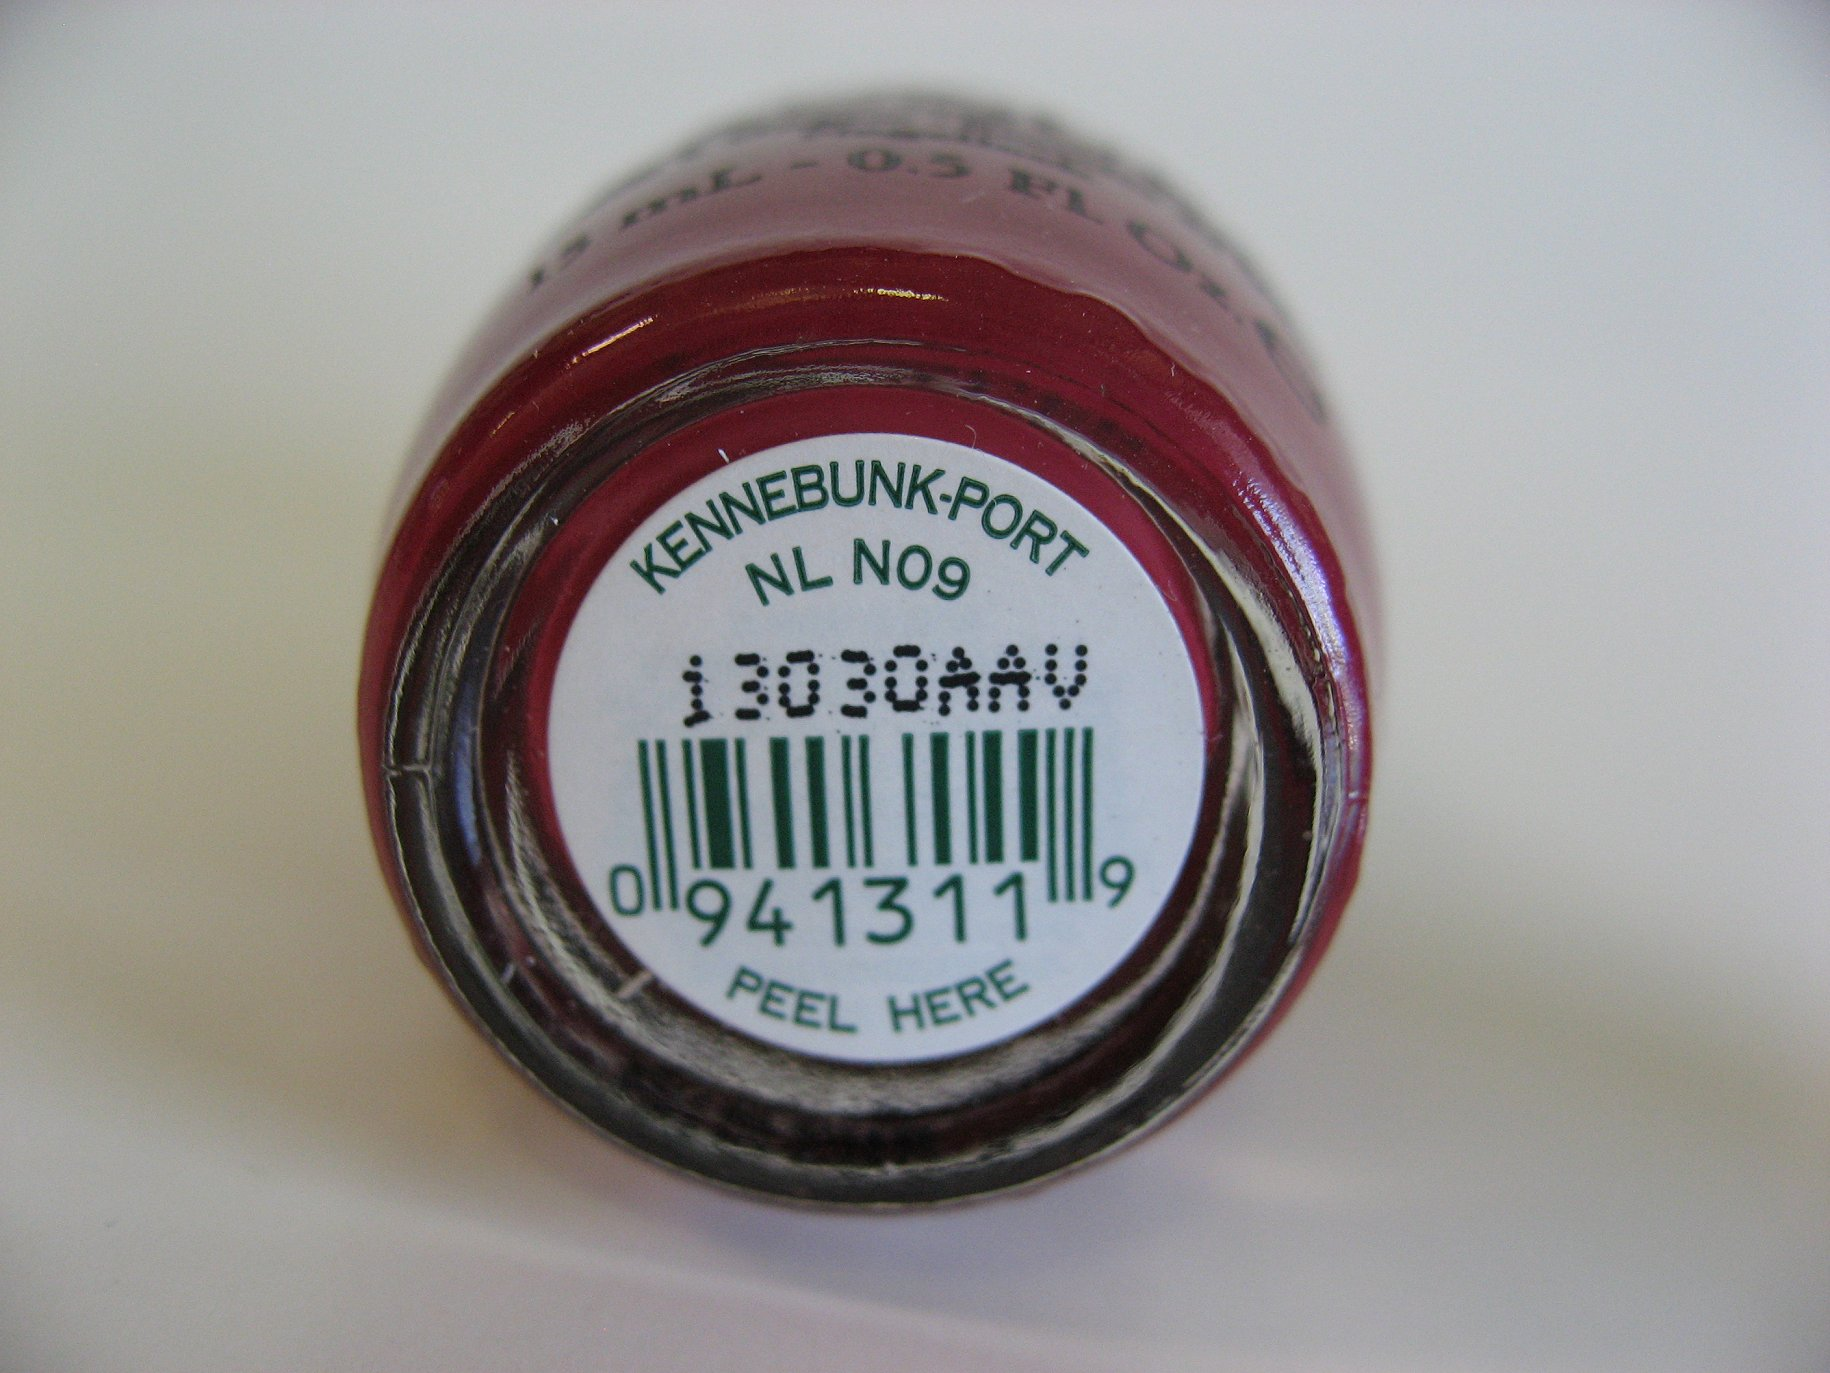 Bottom Label of Kennebunk-Port (Discontinued OPI Nail Polish)